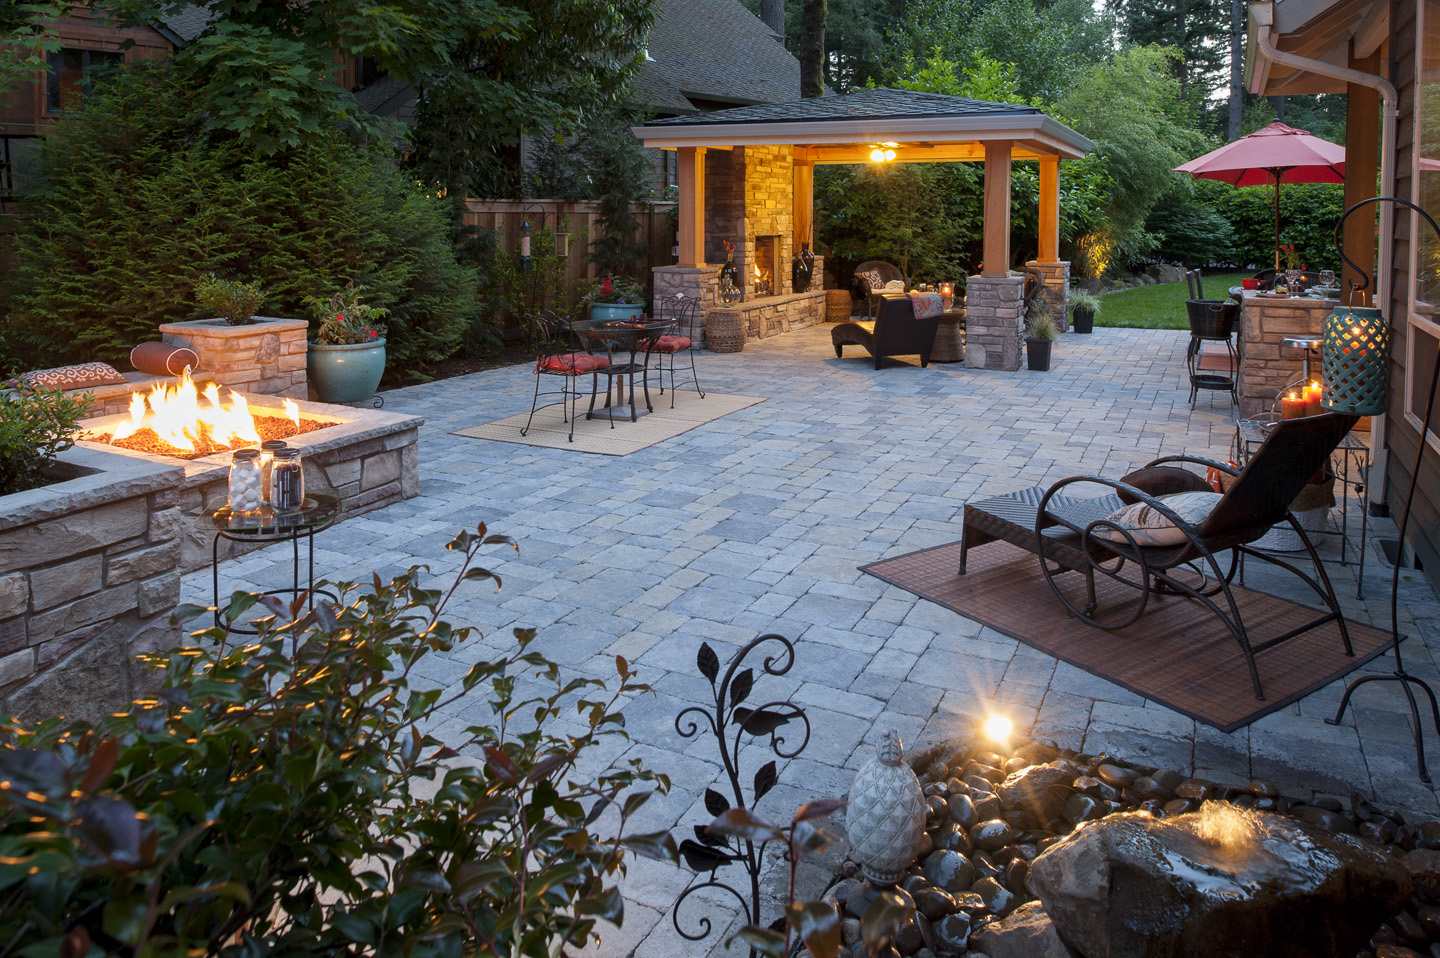 Outdoor Living with all the elements and features!